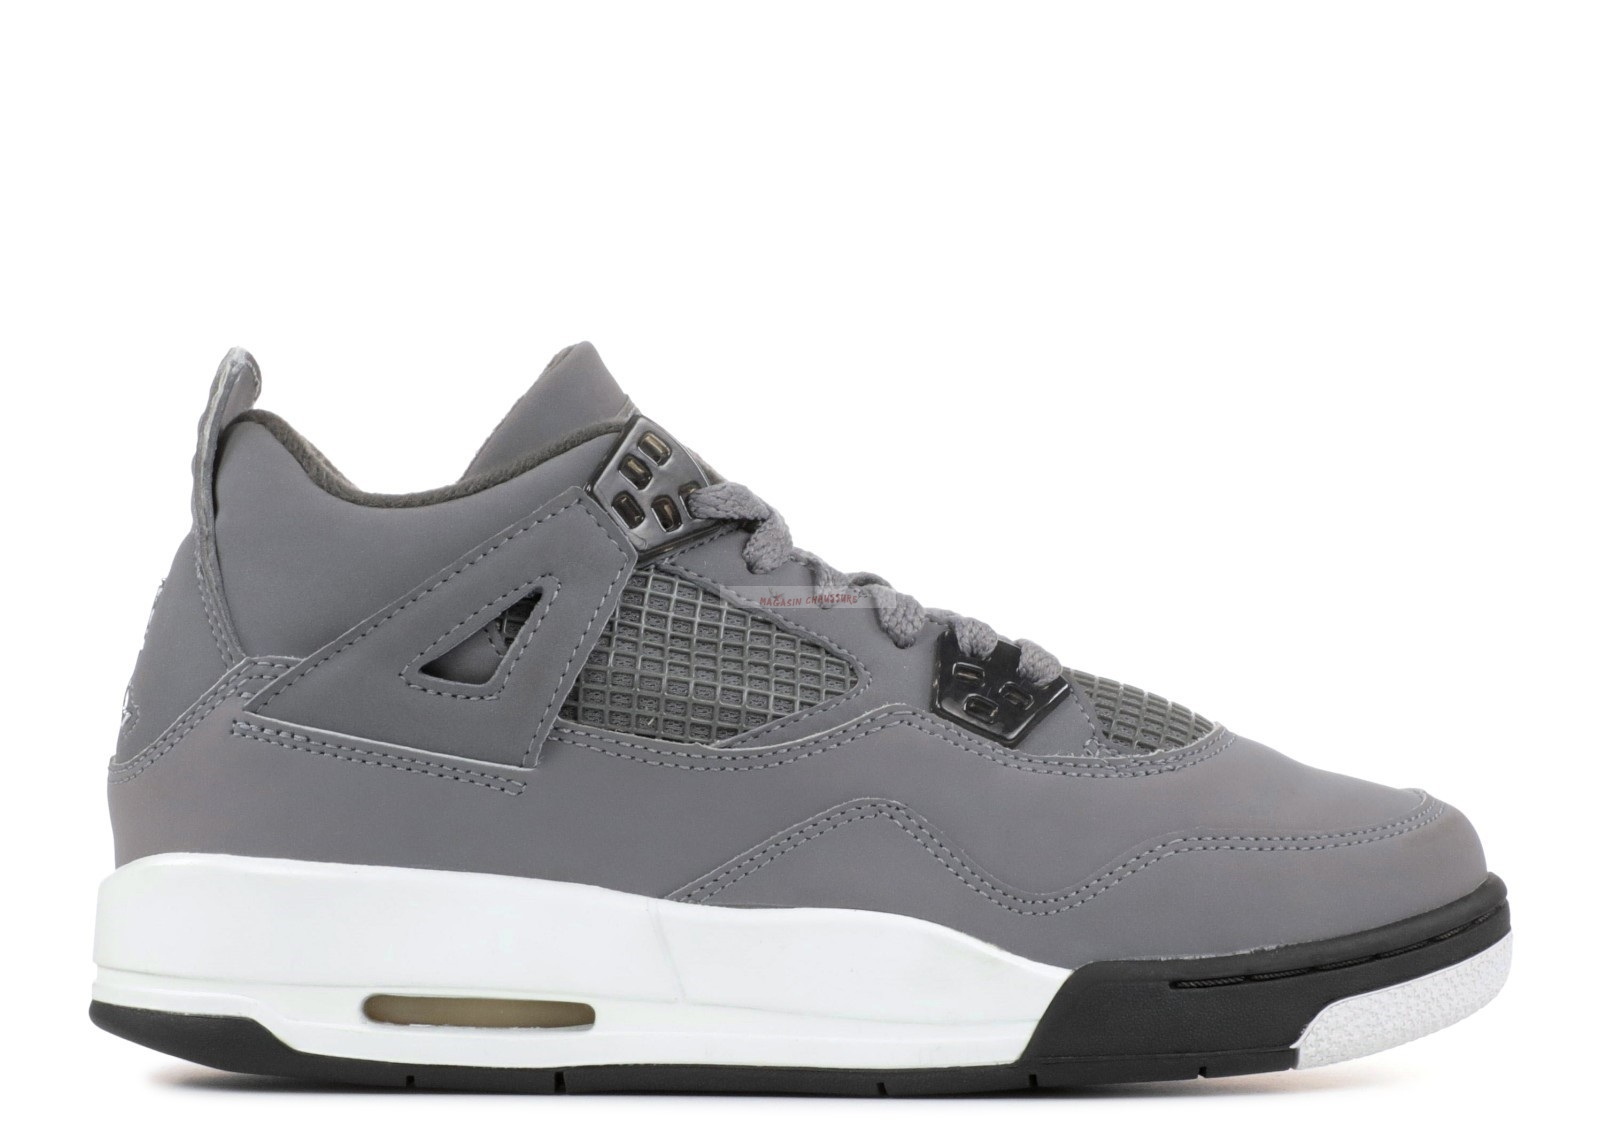 Air Jordan 4 Retro (Gs) Gris (308498-001) Chaussure de Basket